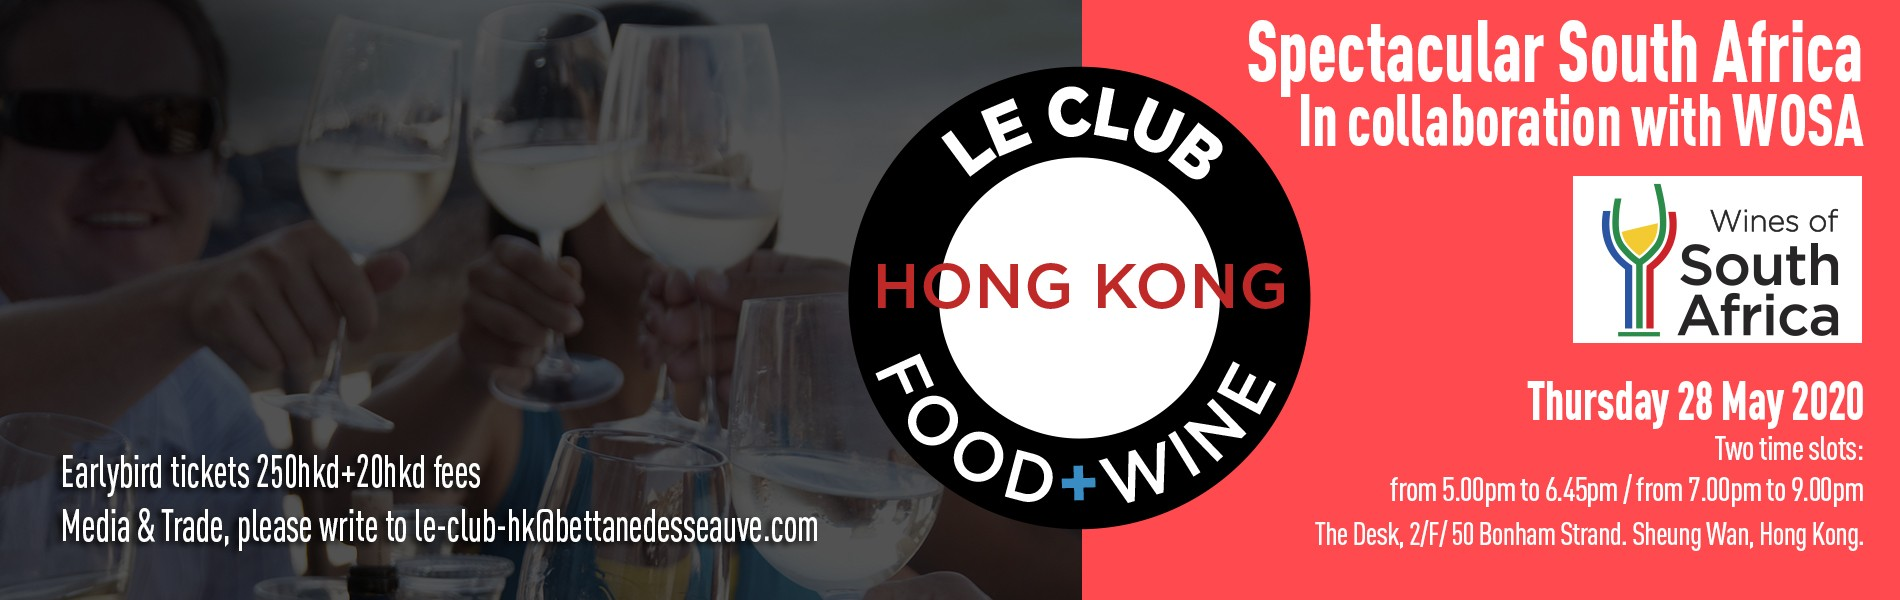 Le Club Food & Wine - Celebrating Spectacular South Africa with WOSA